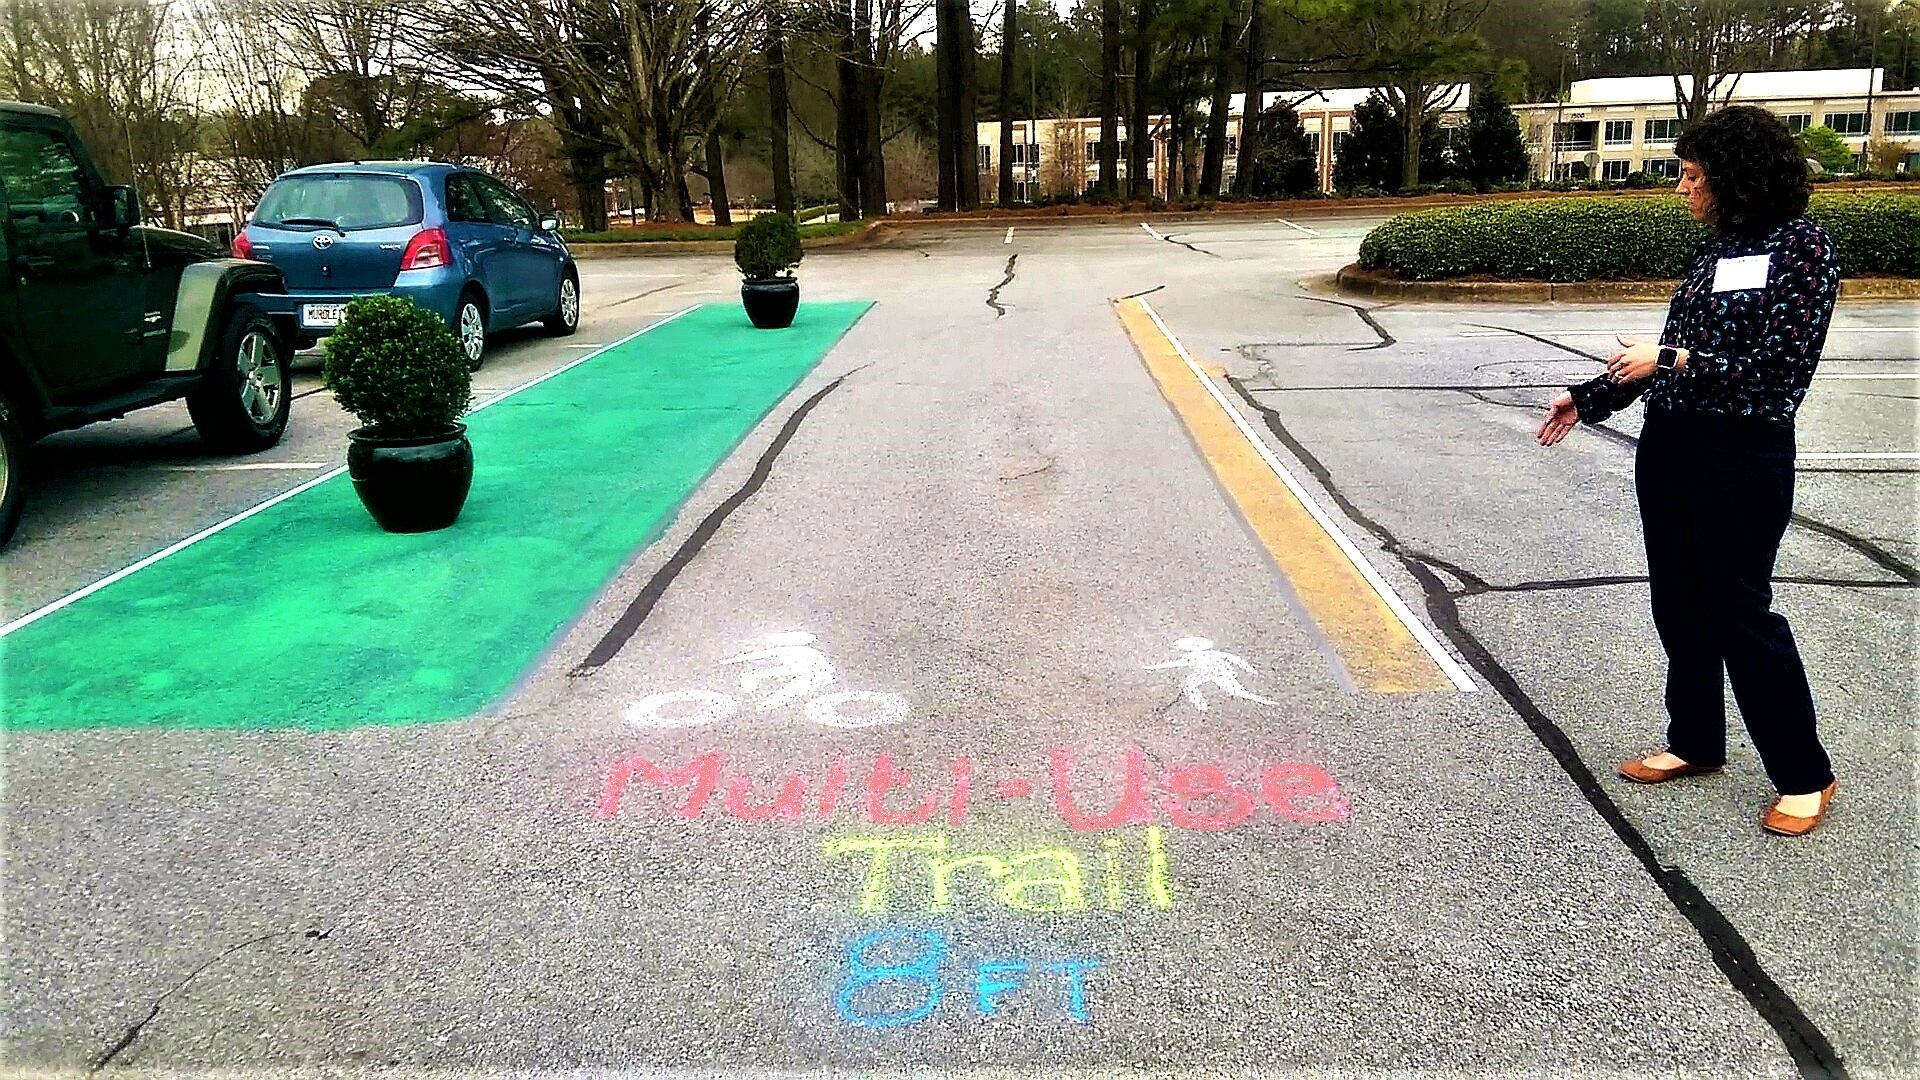 A woman in a parking lot points to a mocked-up version of a multi-use trail drawn with chalk and paint.